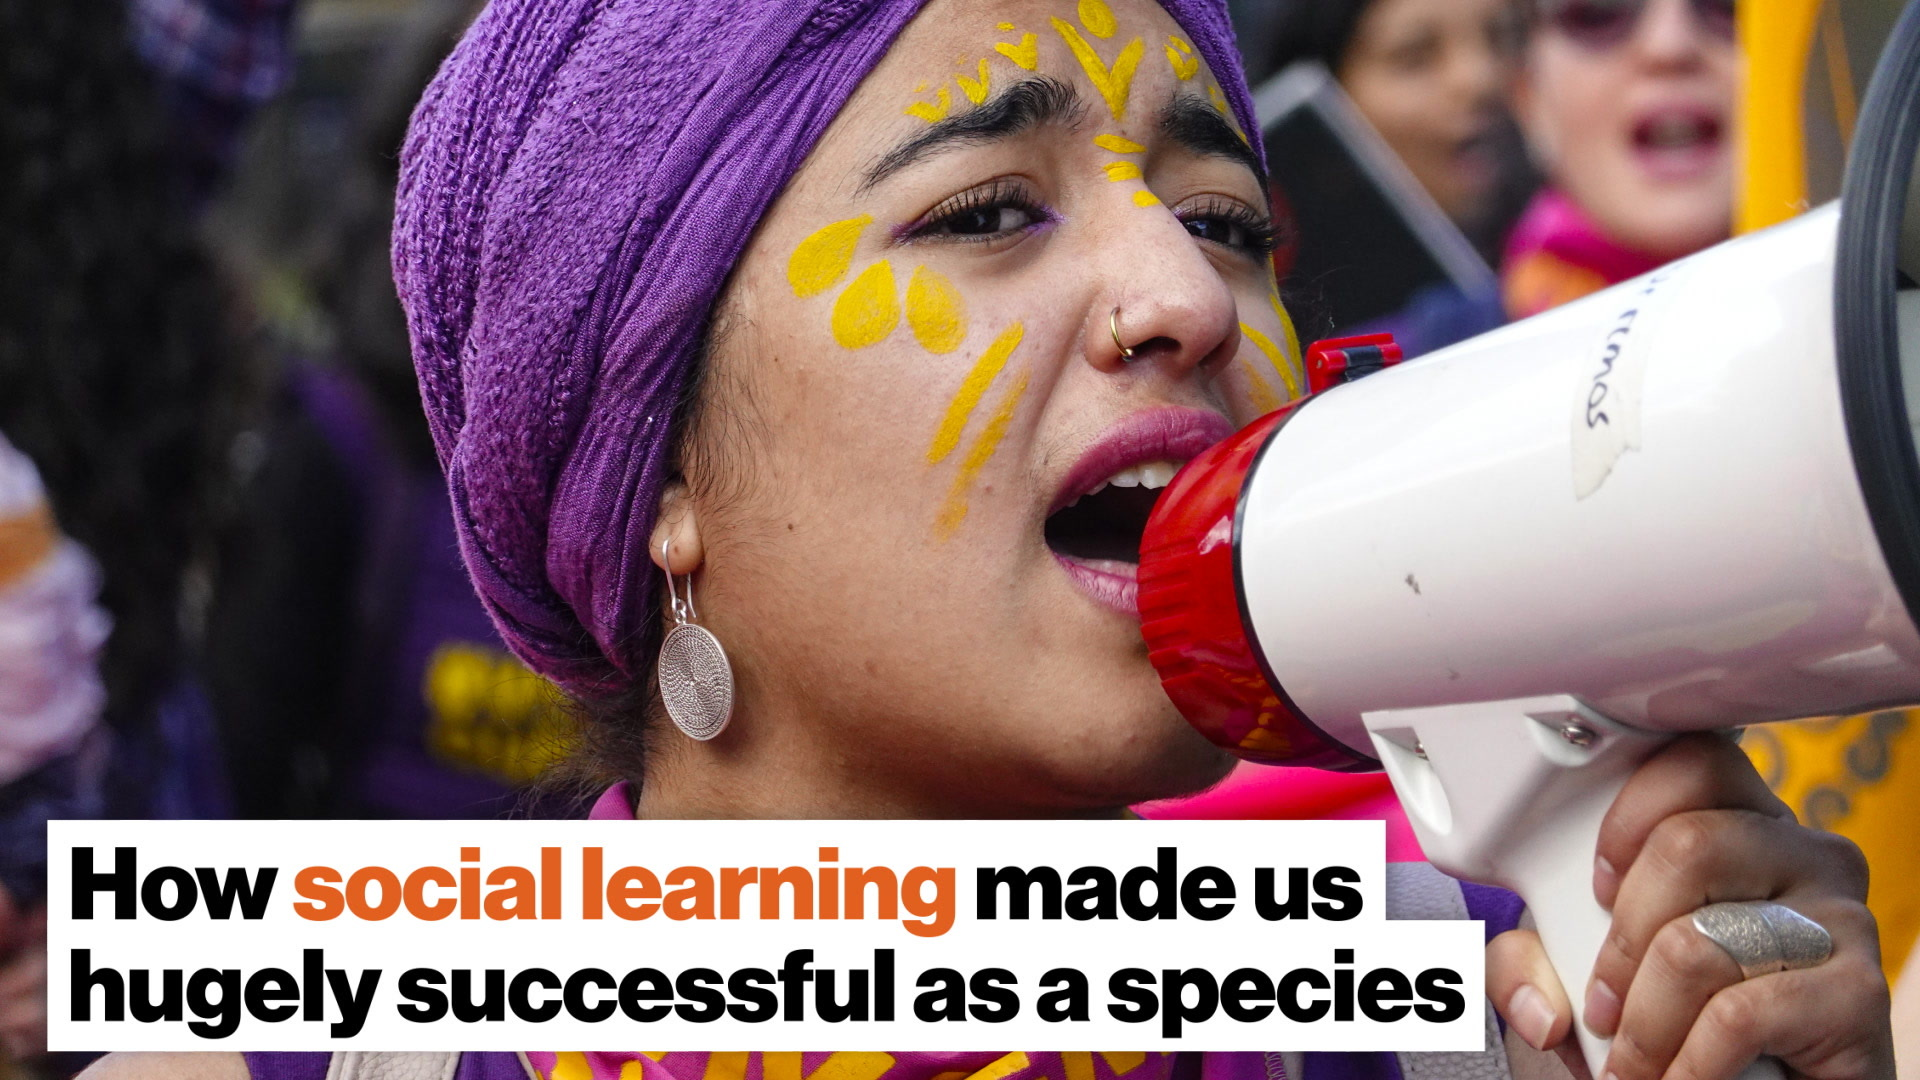 How social learning made us hugely successful as a species